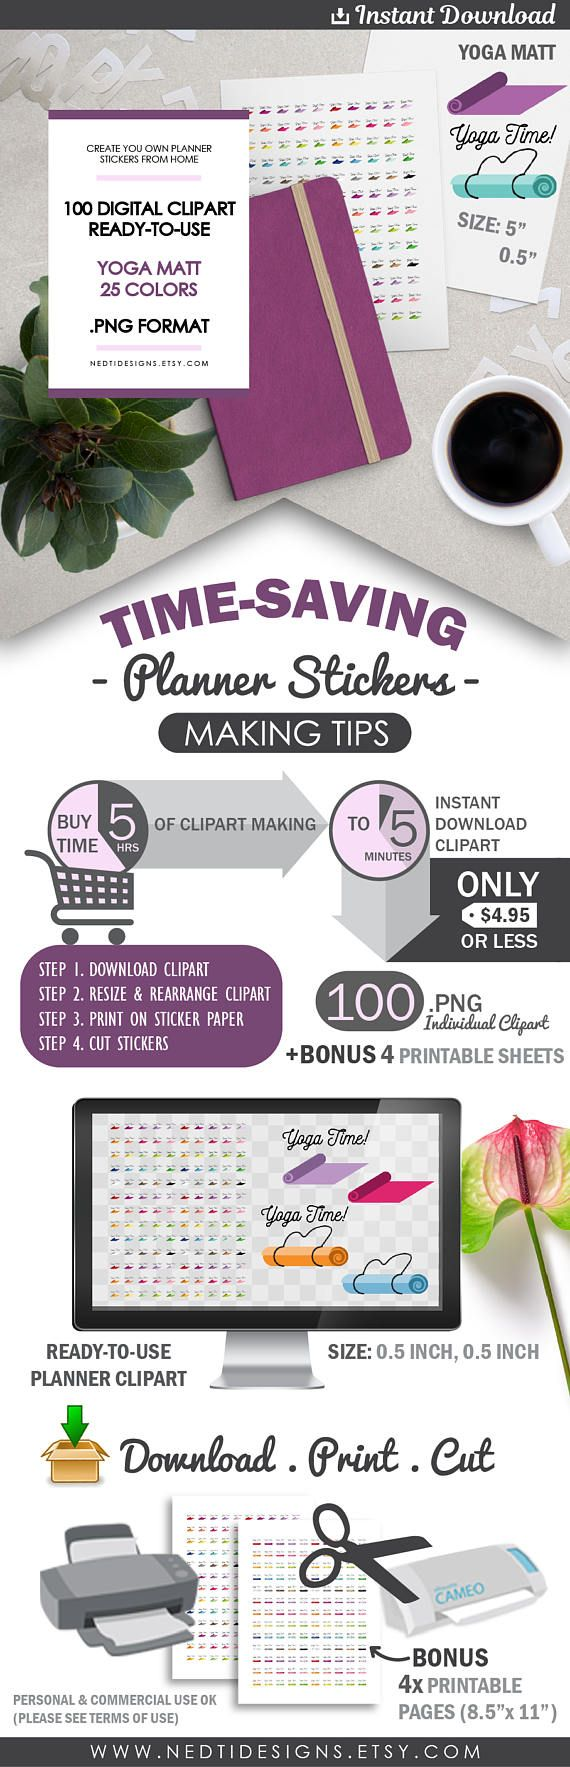 Yoga Mat Clipart for DIY Planner Stickers Stretching Time